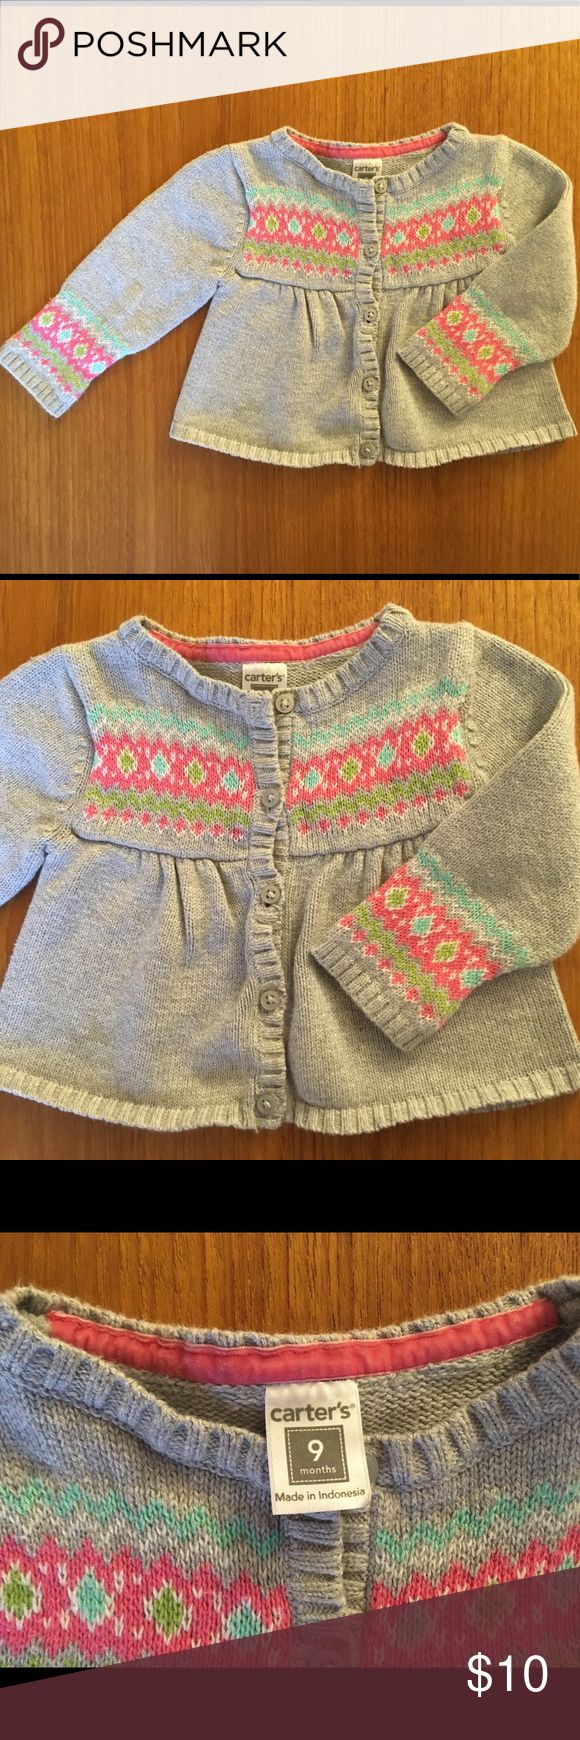 Carter's baby girl knit sweater 9mo Carter's baby girl knit sweater size 9 months. Grey in color with pink, green and blue detailing.  Button up front. Carter's Shirts & Tops Sweaters #babygirlsweaters